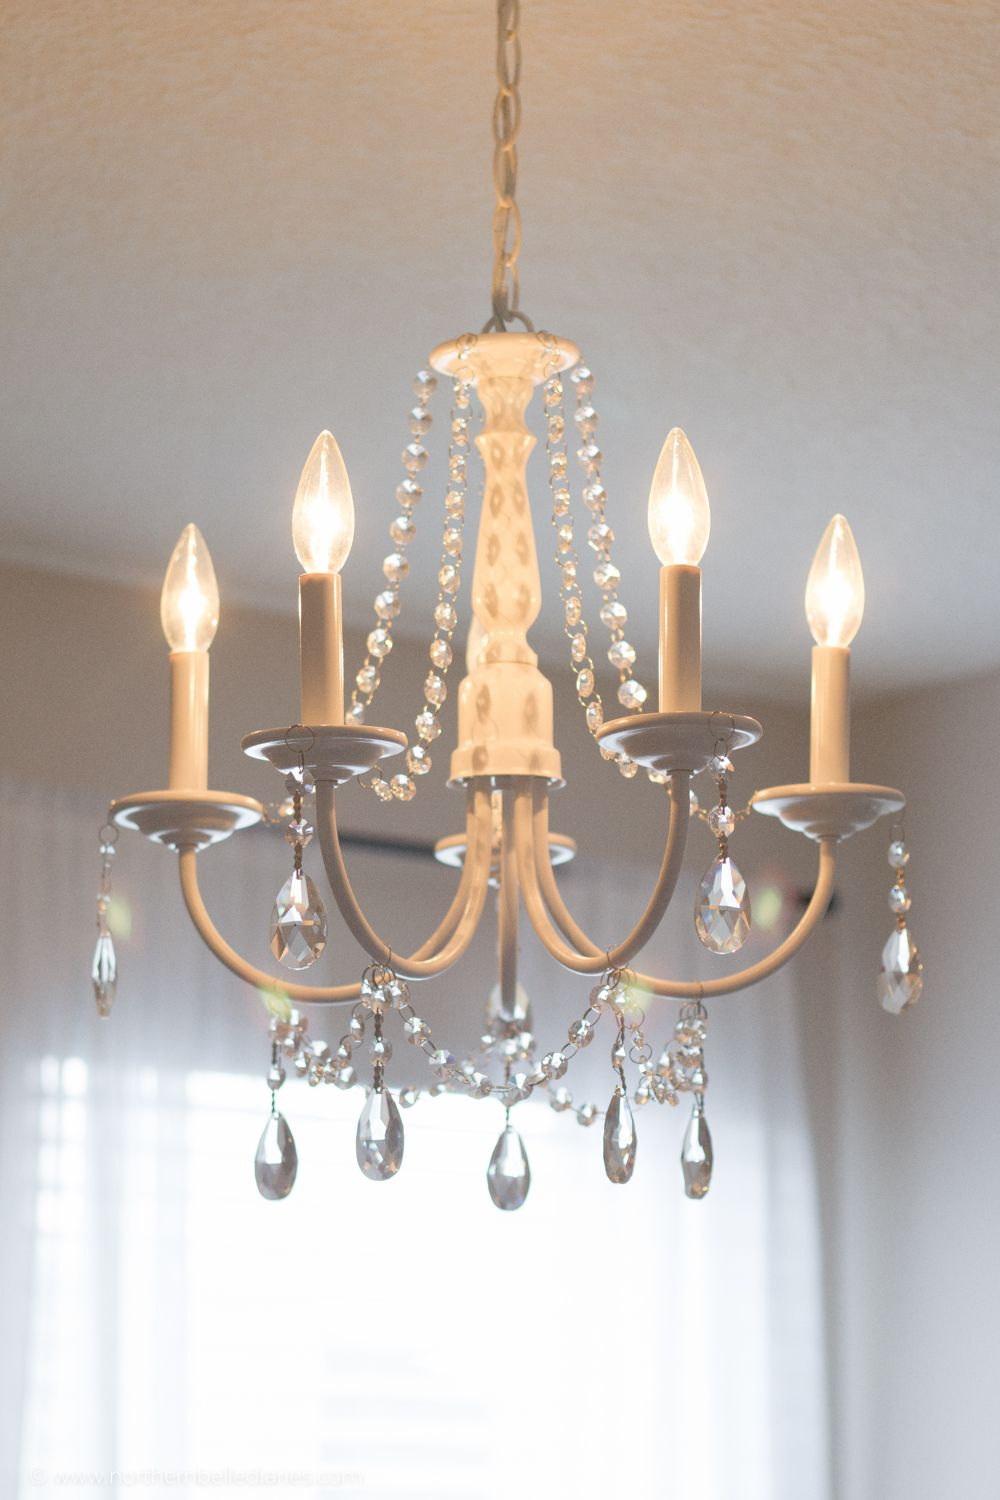 Diy crystal chandelier easy tutorial chandeliers crystals and you can make your own diy crystal chandelier this site shows you how arubaitofo Images